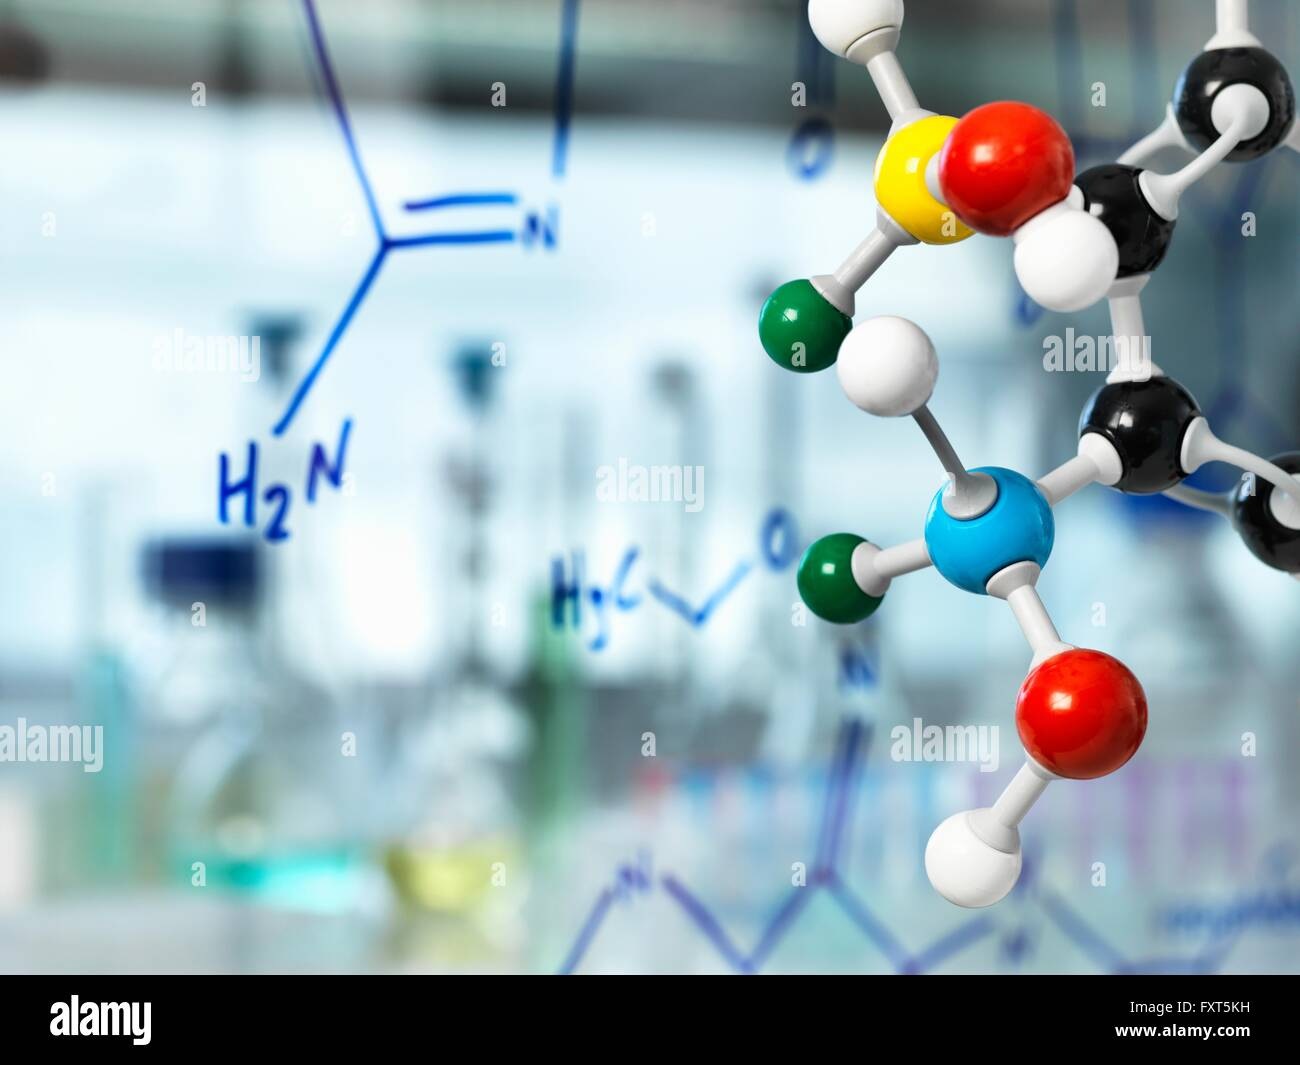 Ball and stick molecular model with chemical formula written on glass - Stock Image